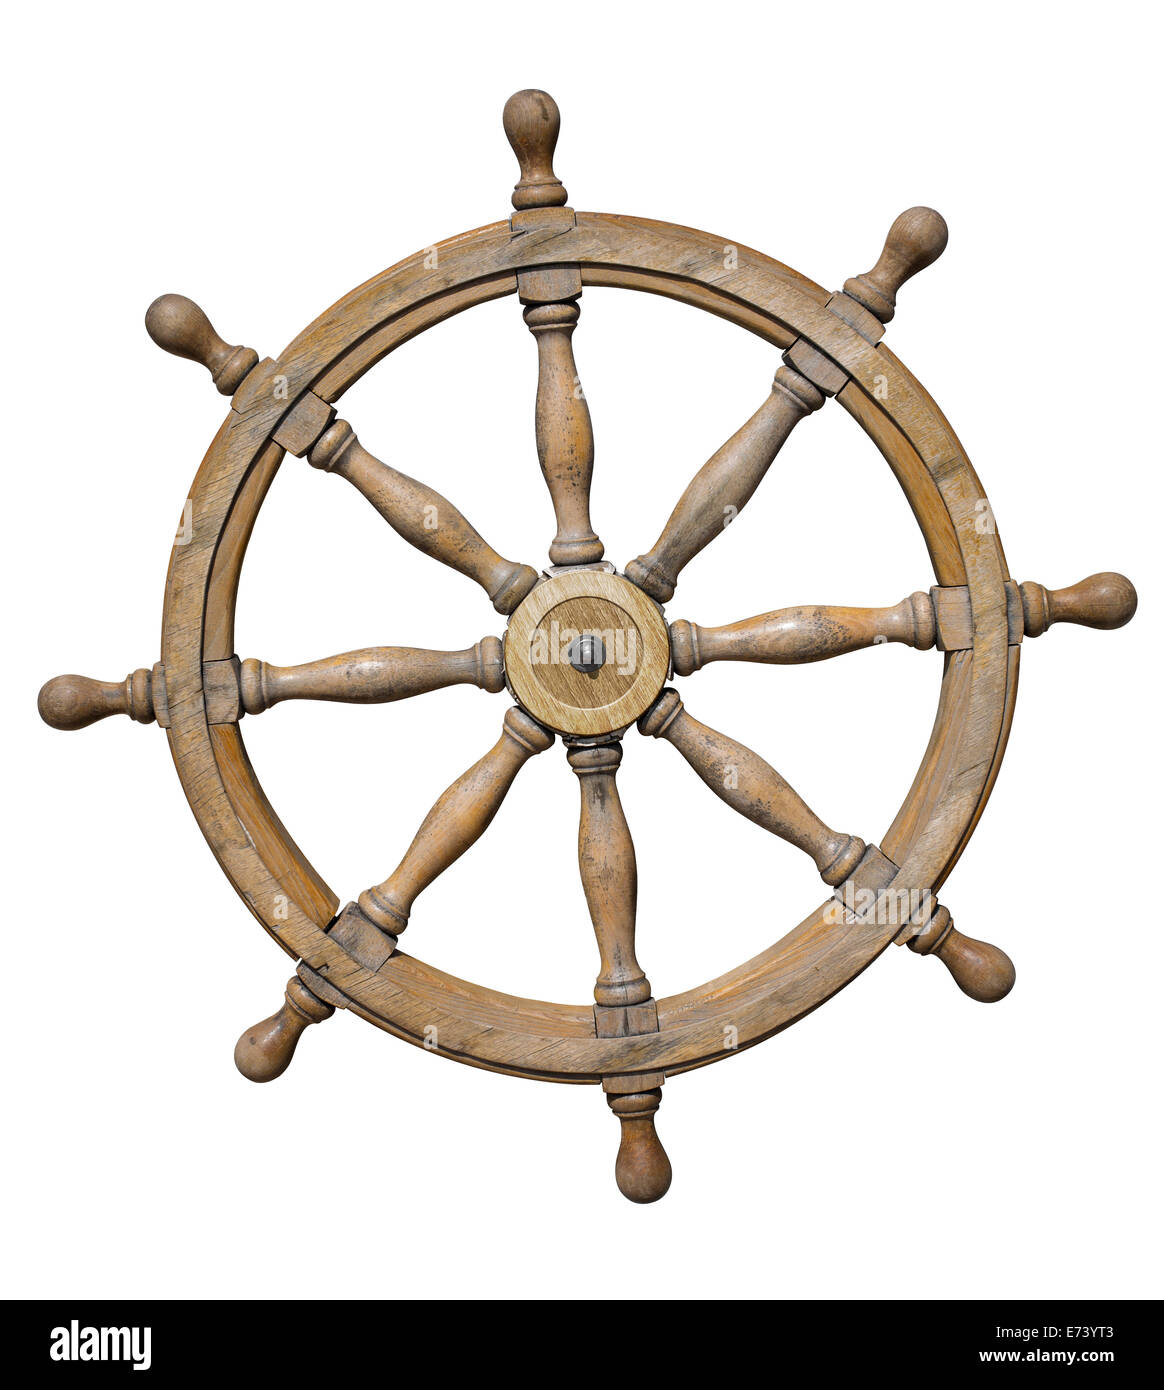 Steering wheel of ship isolated on white with clipping path included - Stock Image